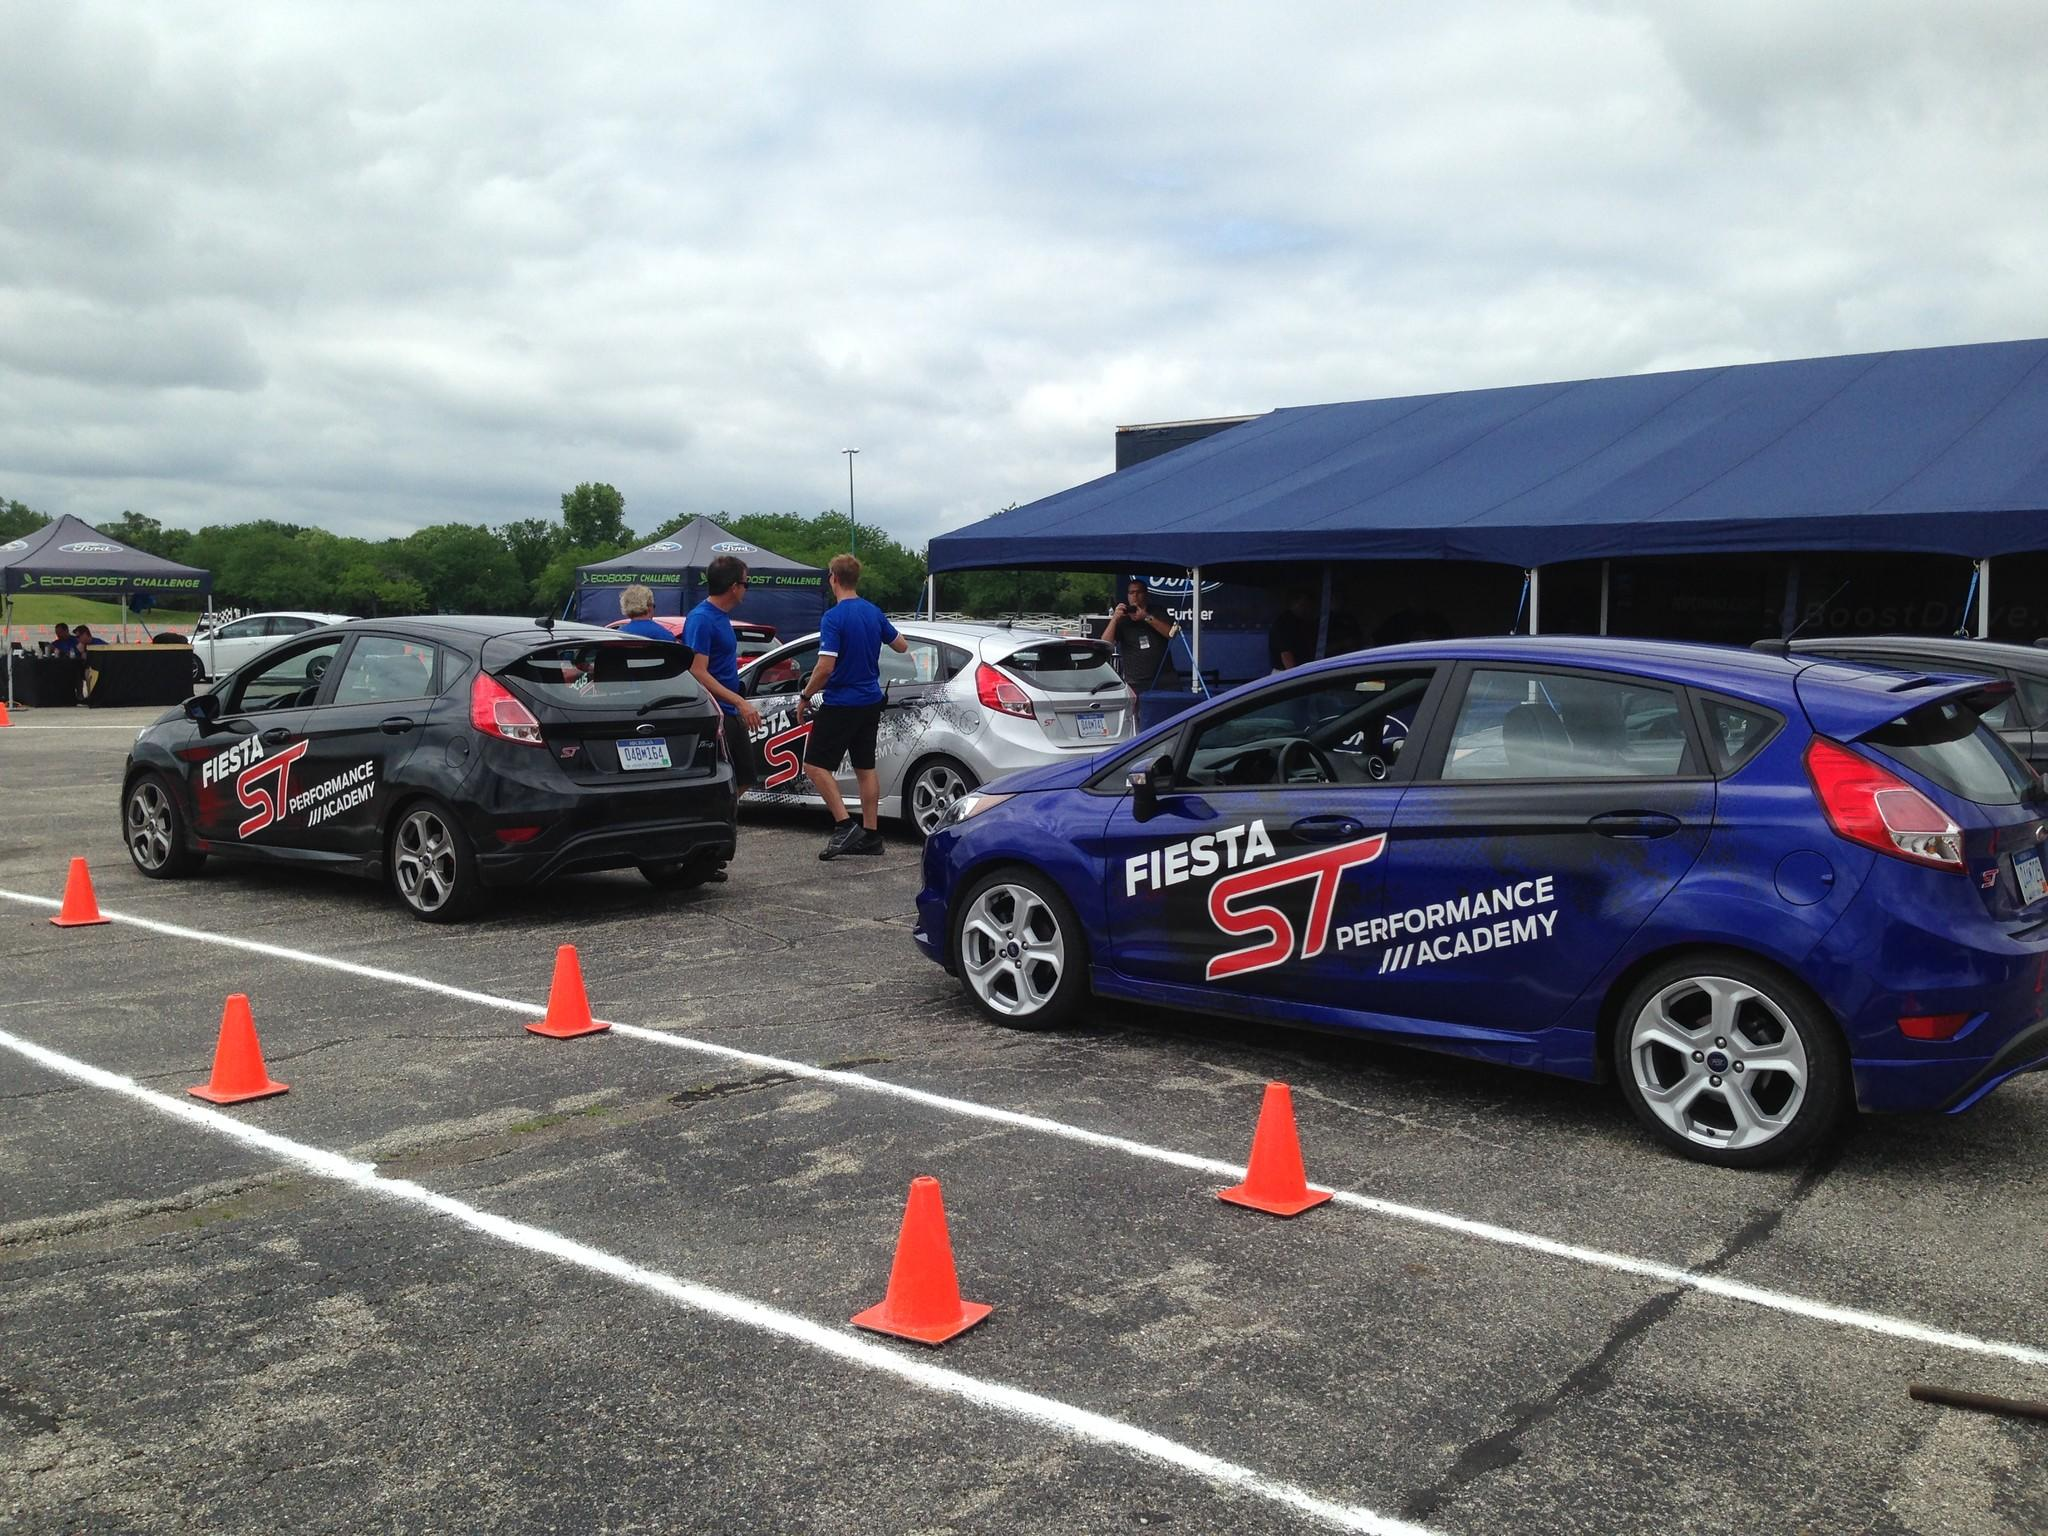 The 2014 Ford EcoBoost challenge at Arlington Park in Arlington Heights, Ill. features several experential courses, including the timed Fiesta ST performance academy. The event runs through June 22, 2014.